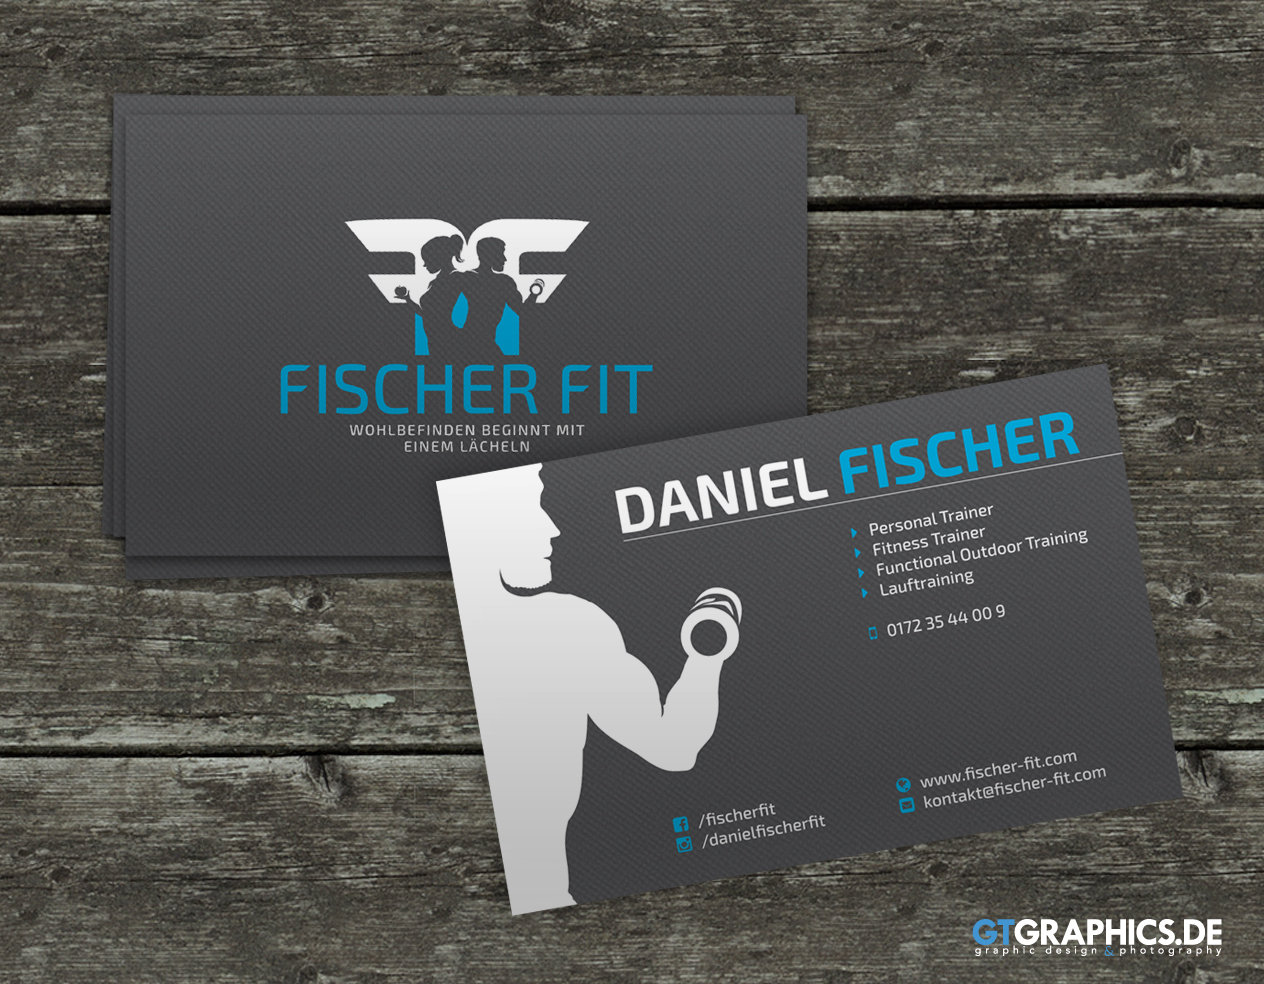 Fischer Fit Print Showcase Gtgraphics